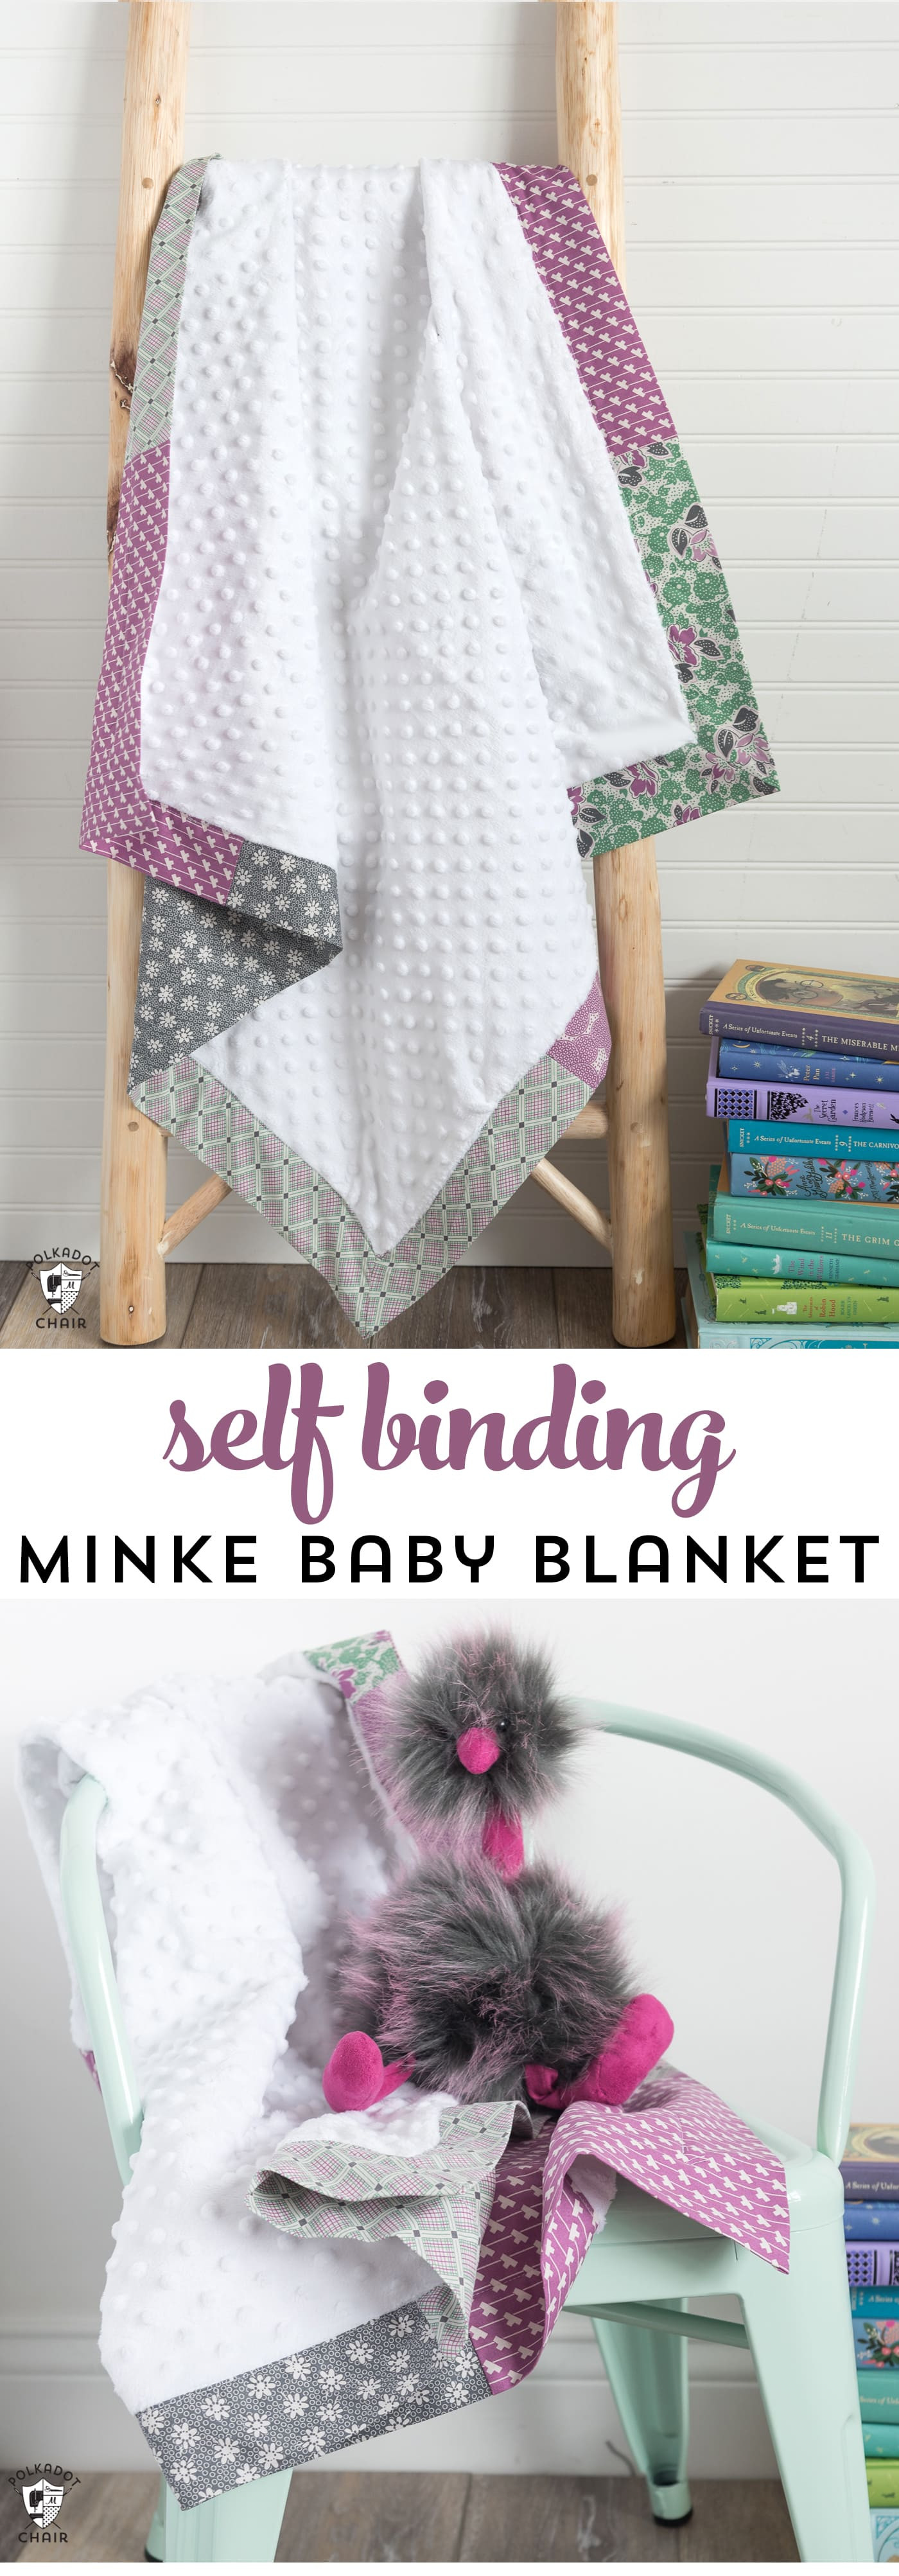 Self Binding Minke Baby Blanket Tutorial - The Polka Dot Chair